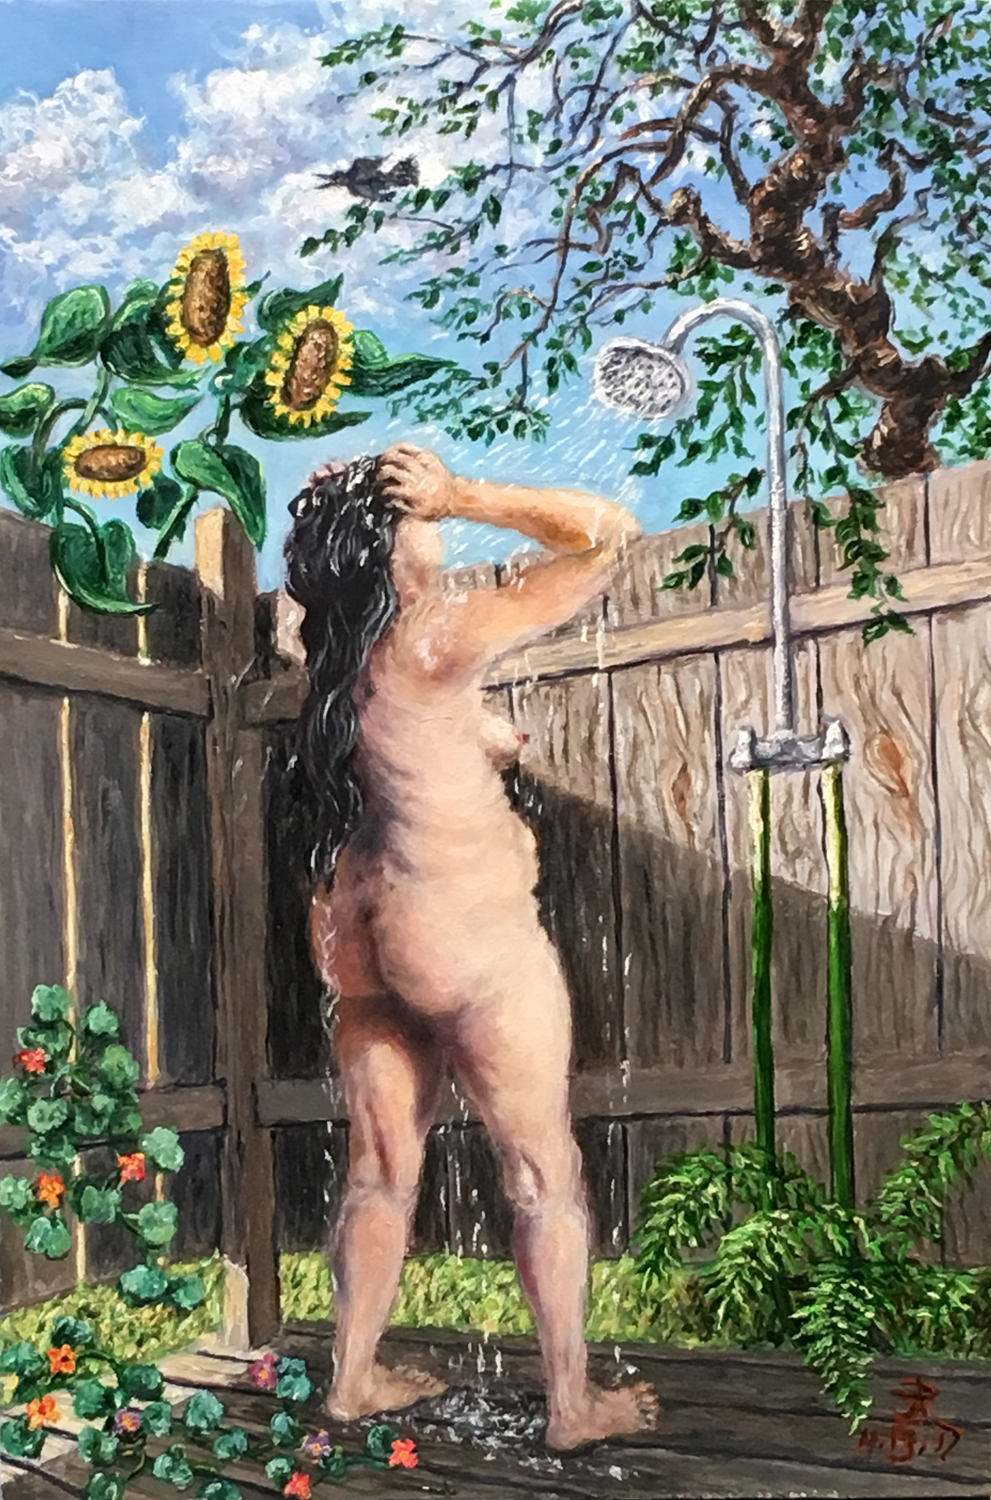 Ode to an Outside Shower